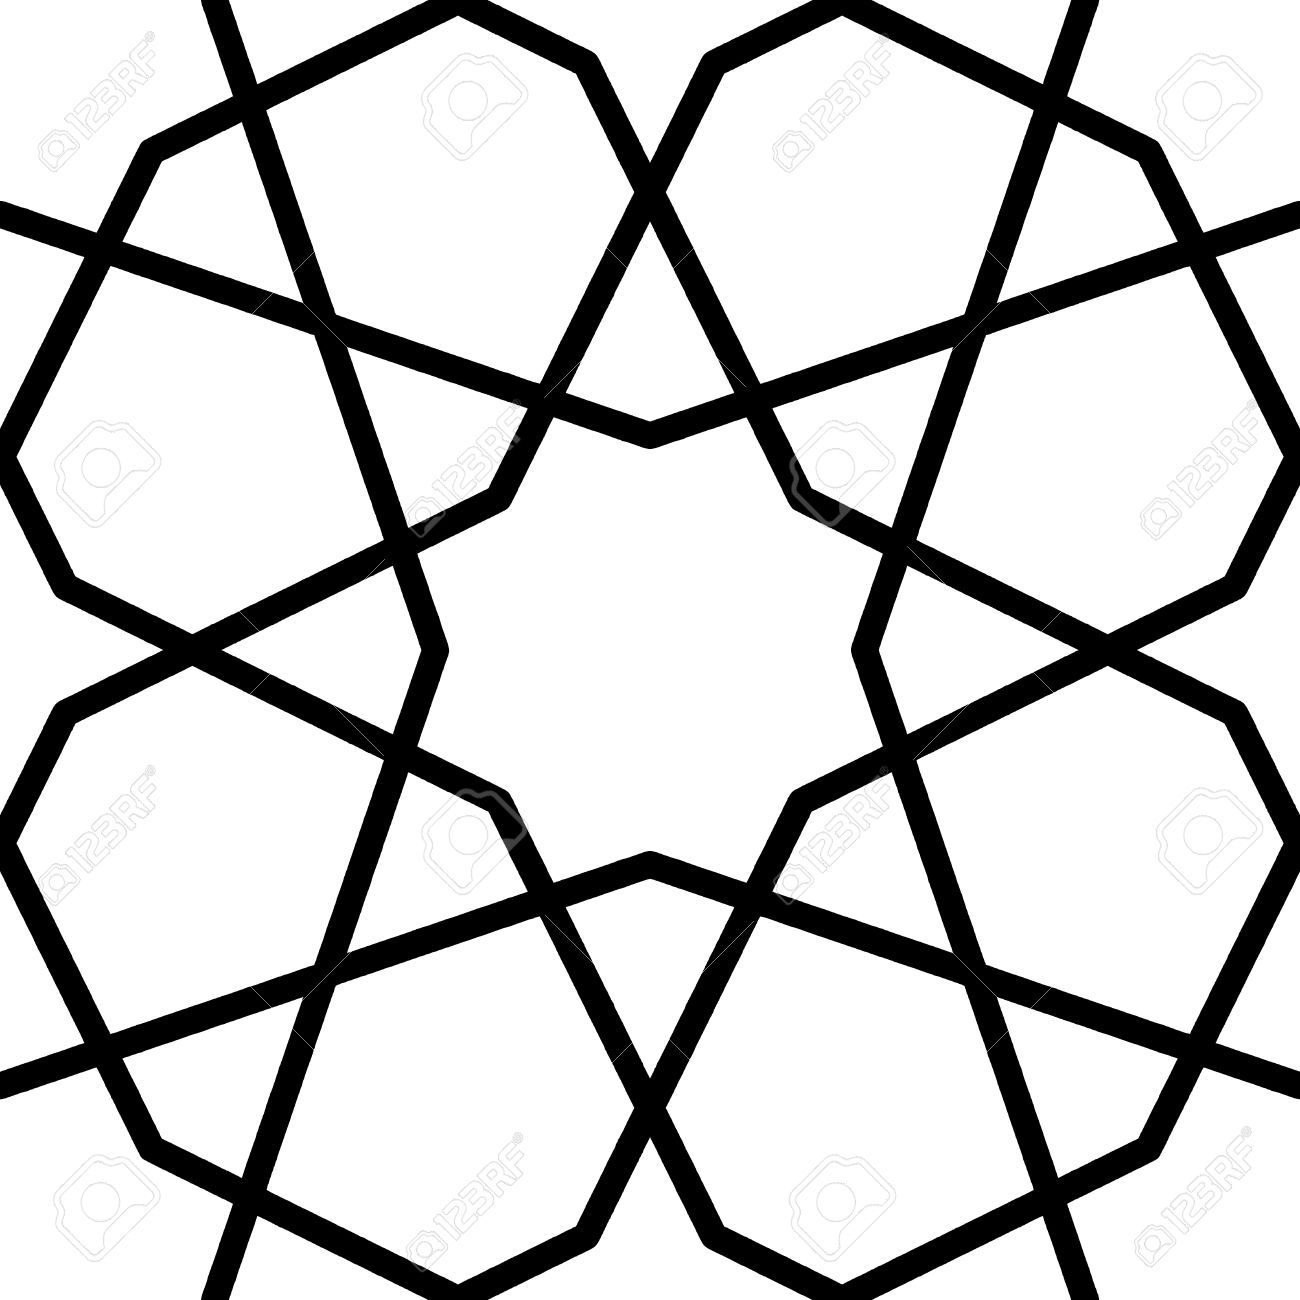 geometric islamic pattern by sun and flower royalty free cliparts rh pinterest com Free Company Logos Free Calligraphy Ornaments